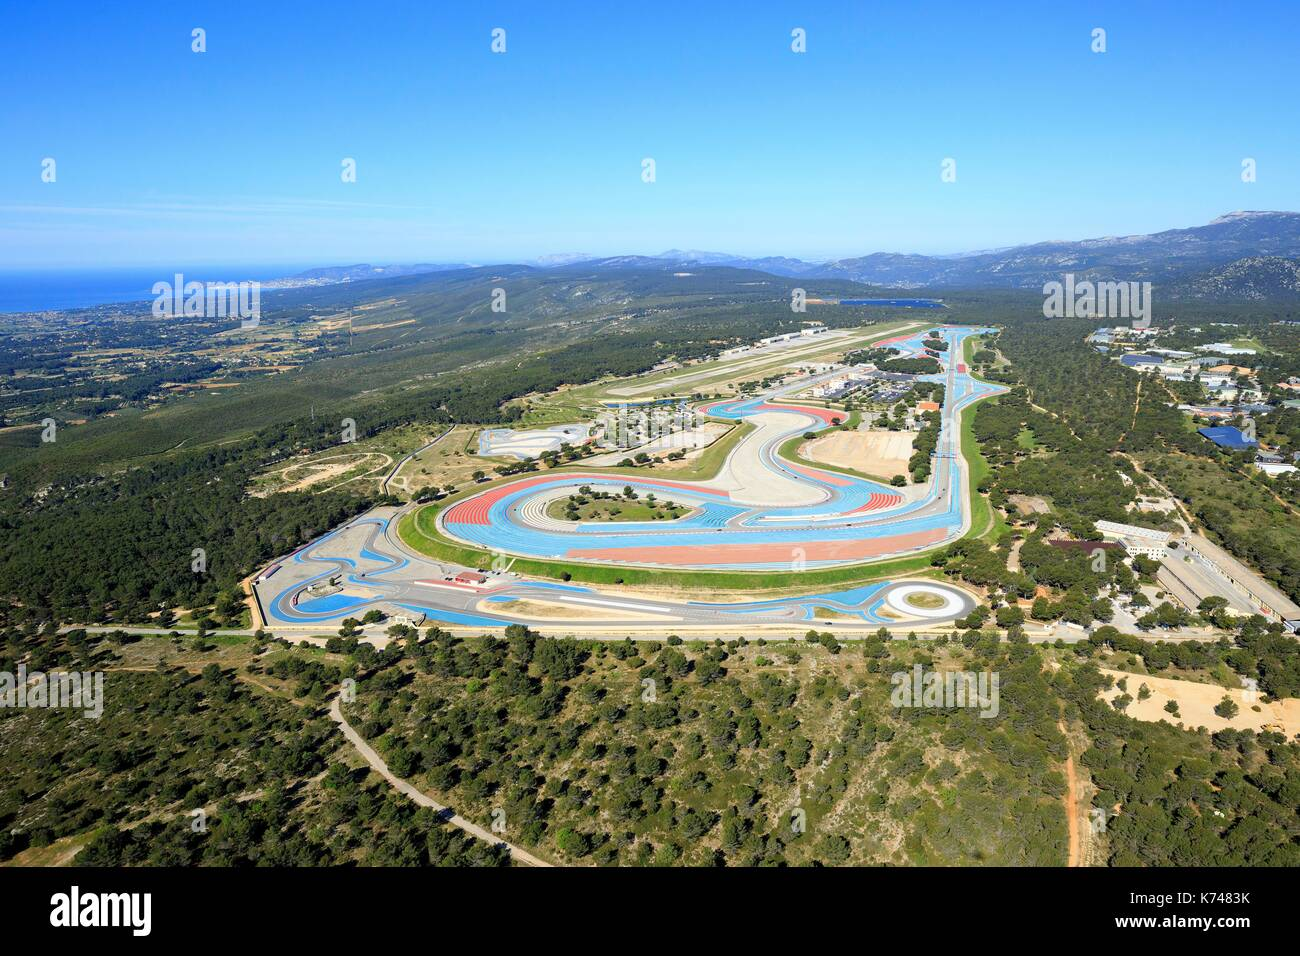 le castellet aerial view stock photos le castellet aerial view stock images alamy. Black Bedroom Furniture Sets. Home Design Ideas